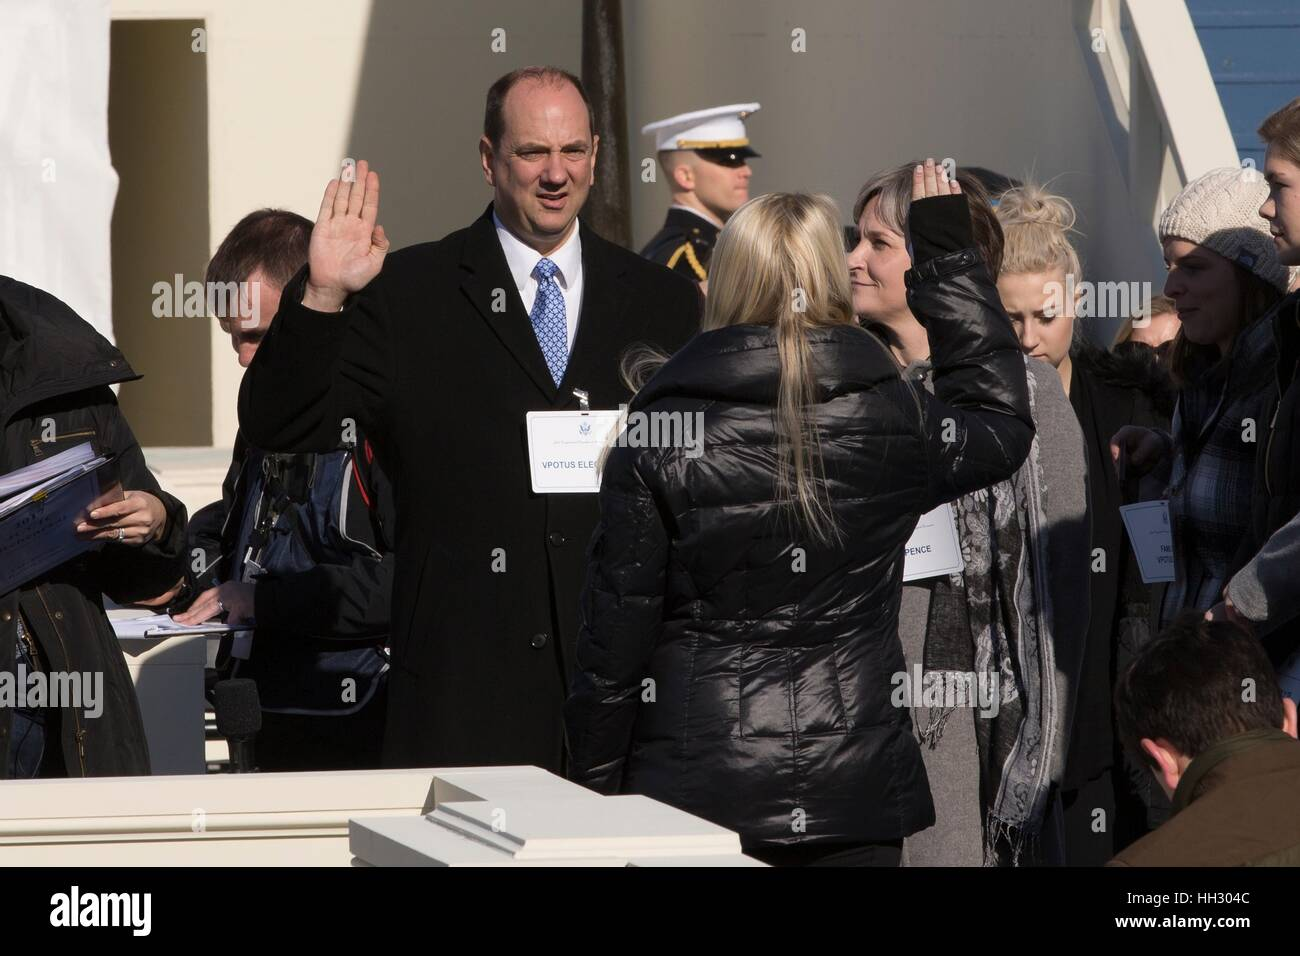 Washington, D.C, USA. 15th January, 2017. The stand-in for Vice President Elect Mike Pence is sworn in during the - Stock Image